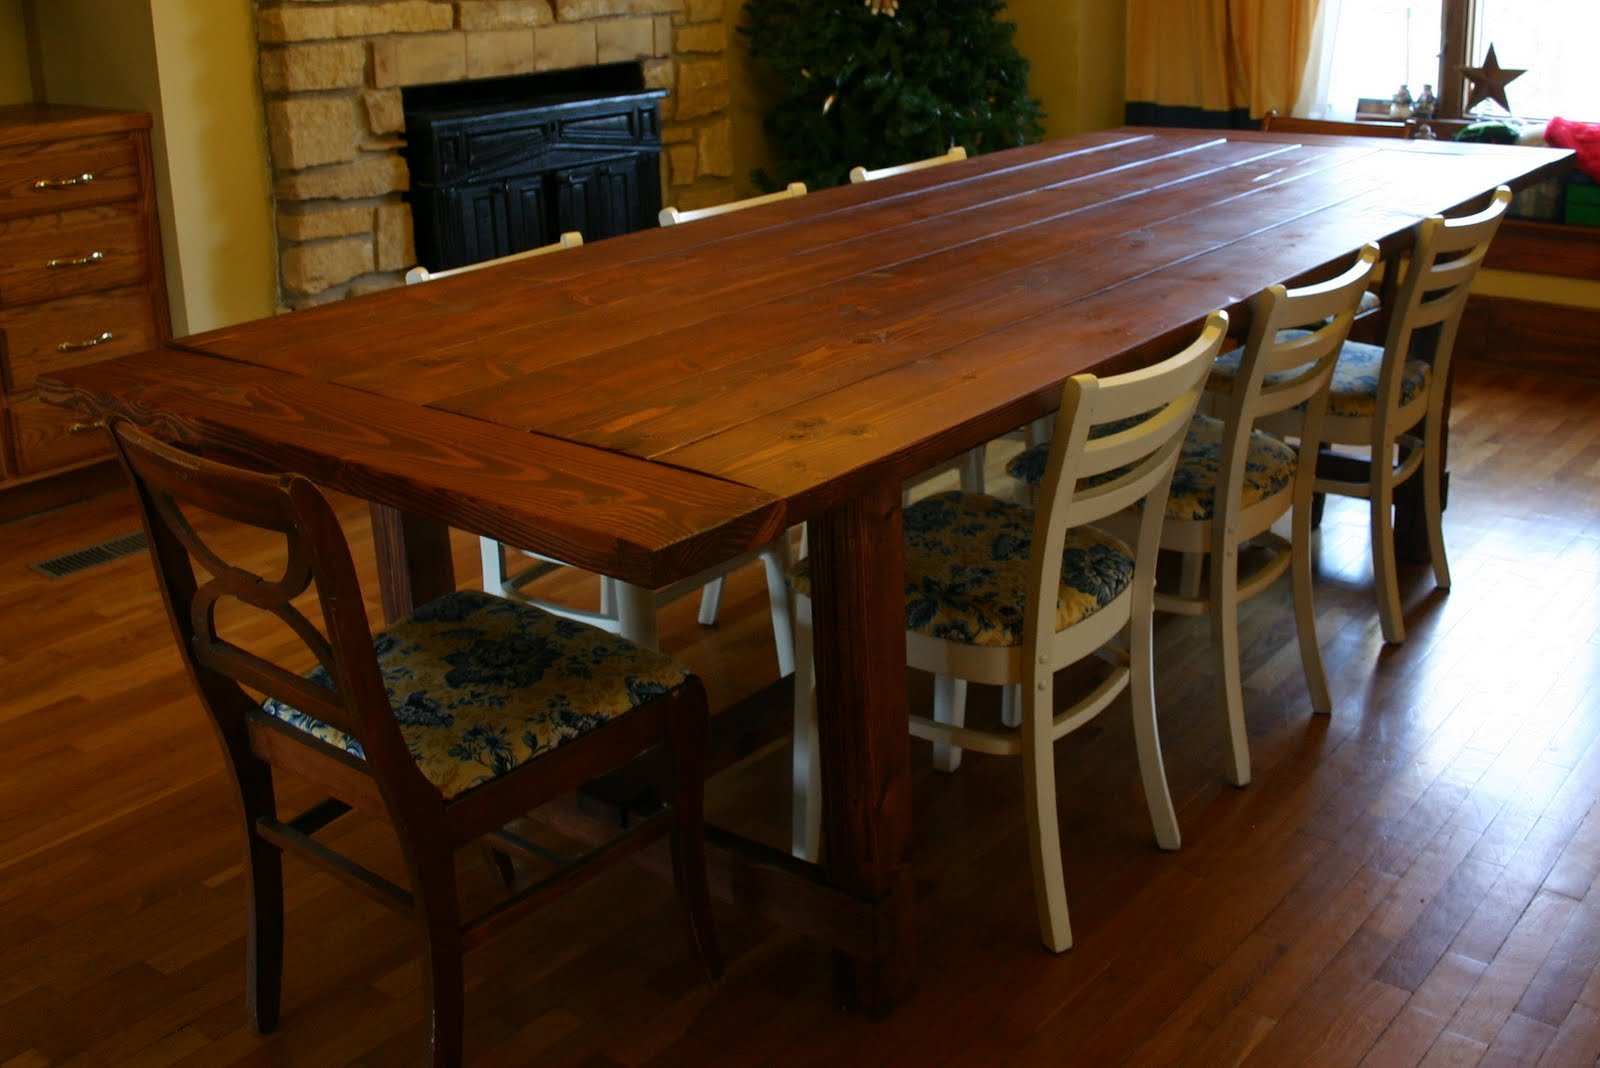 Free dining table plans large and beautiful photos photo to select free dining table plans - Dining table design images ...